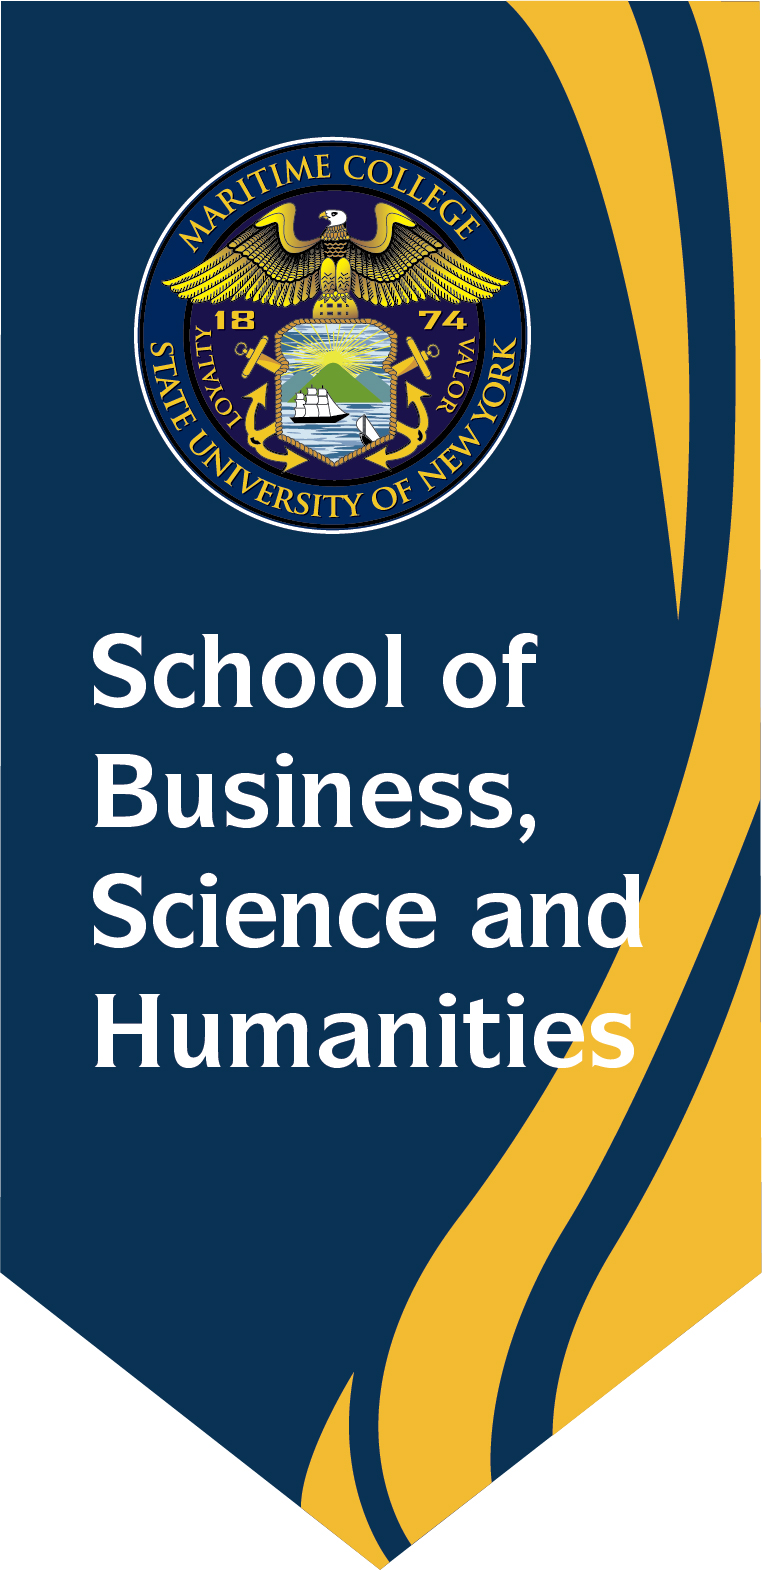 School of Business, Science and Humanities